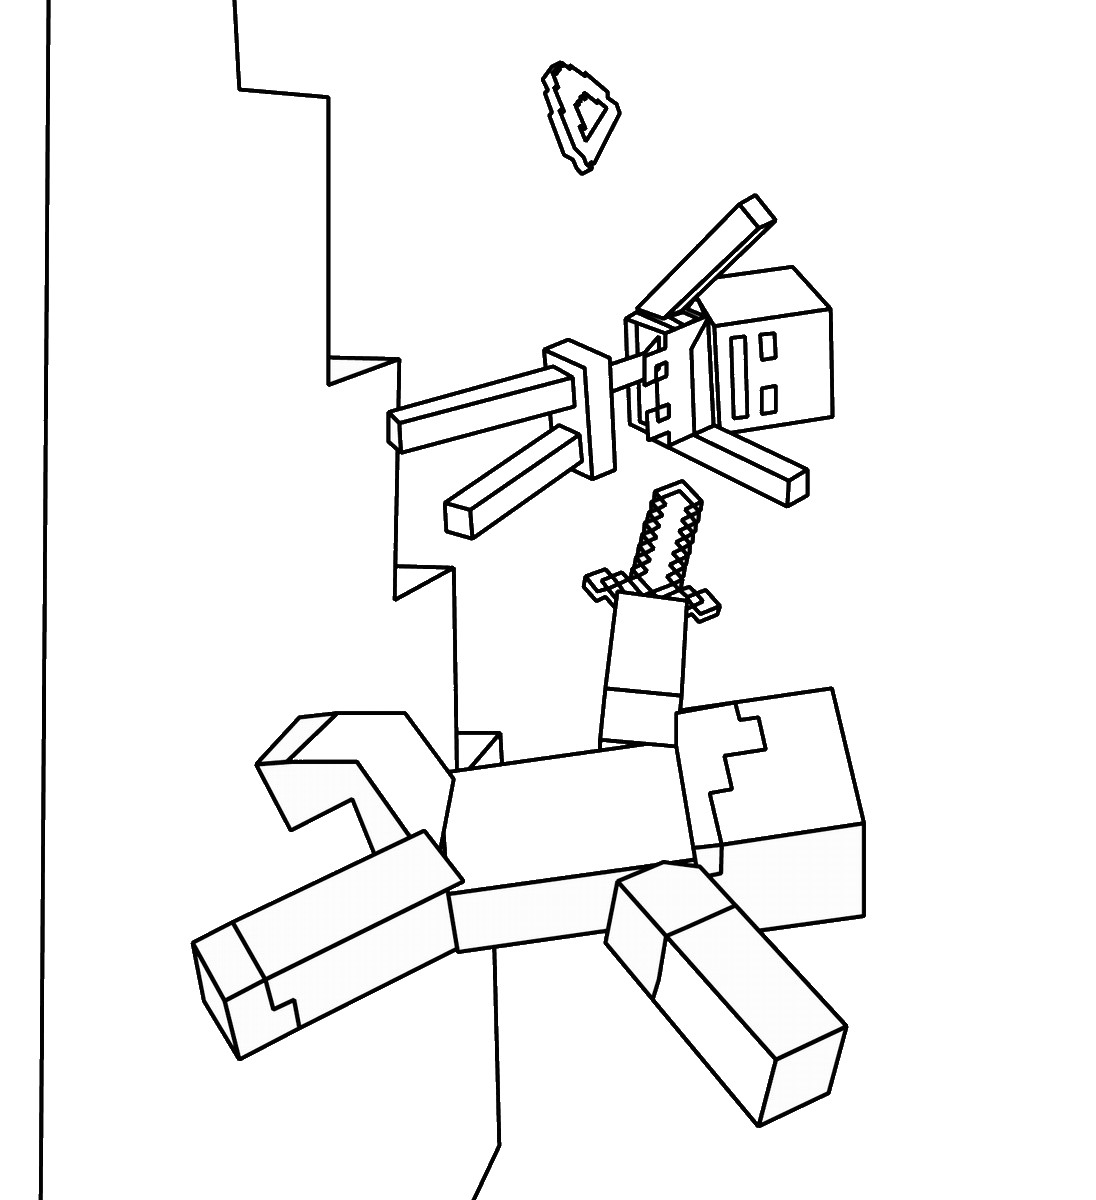 minecraft dinosaur coloring pages pin by bob simmons on coloring sheets dinosaur coloring coloring minecraft pages dinosaur